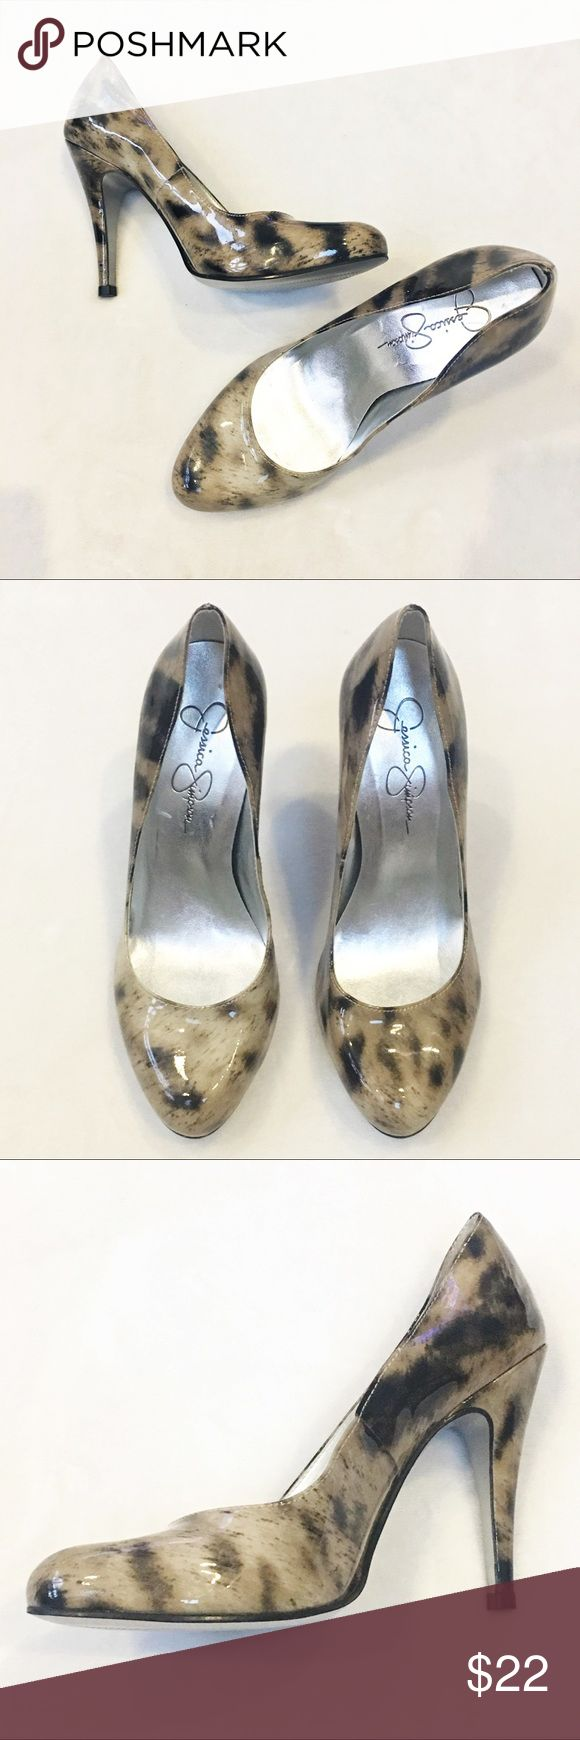 """Jessica Simpson Patent Leather Heels Brenda 2 leopard print patent leather high heels in excellent condition. Size 6-1/2 B. Heel height 4"""". Jessica Simpson Shoes Heels"""